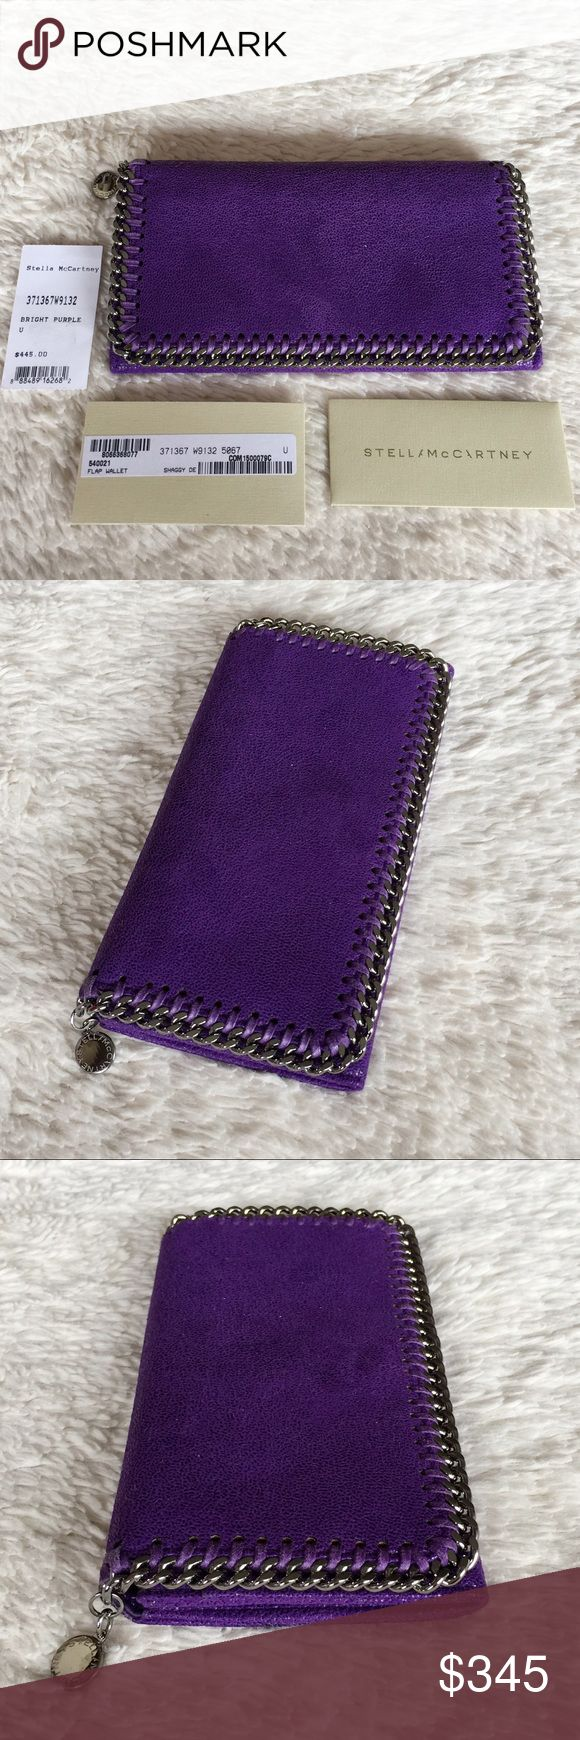 NEW STELLA MACCARTNEY FALABELLA SHAGGY DEER WALLET Authentic. Made in Italy. Brand new with tags, authentic card, and care book. PLEASE NO TRADE. THE PRICE IS FIRM. Roomy enough for your phone, credit cards, stash of cash and more, this wallet, with its multitude of pockets, will have you stylishly organized in a snap. The ruthenium diamond-cut chain adds some edge to the soft, faux-leather construction, while a logo-etched disc puts the polish on this look. Snap-flap closure. Interior zip…